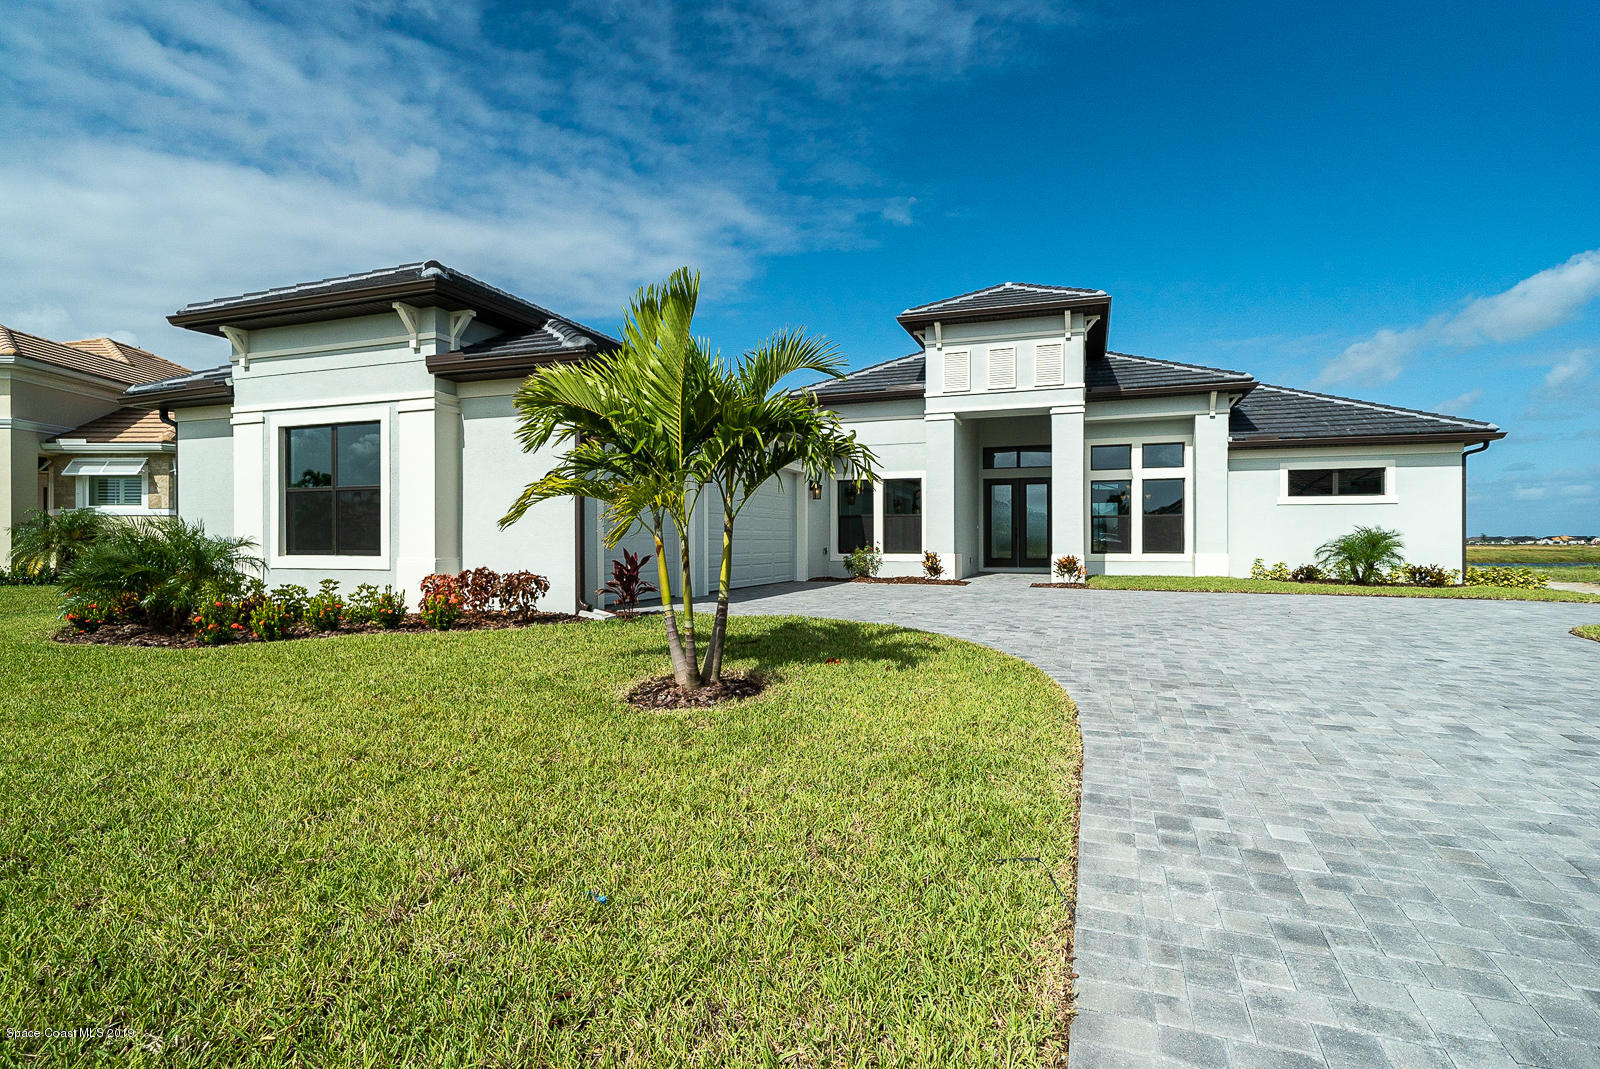 Single Family Homes for Sale at 8399 Serrano Melbourne, Florida 32940 United States